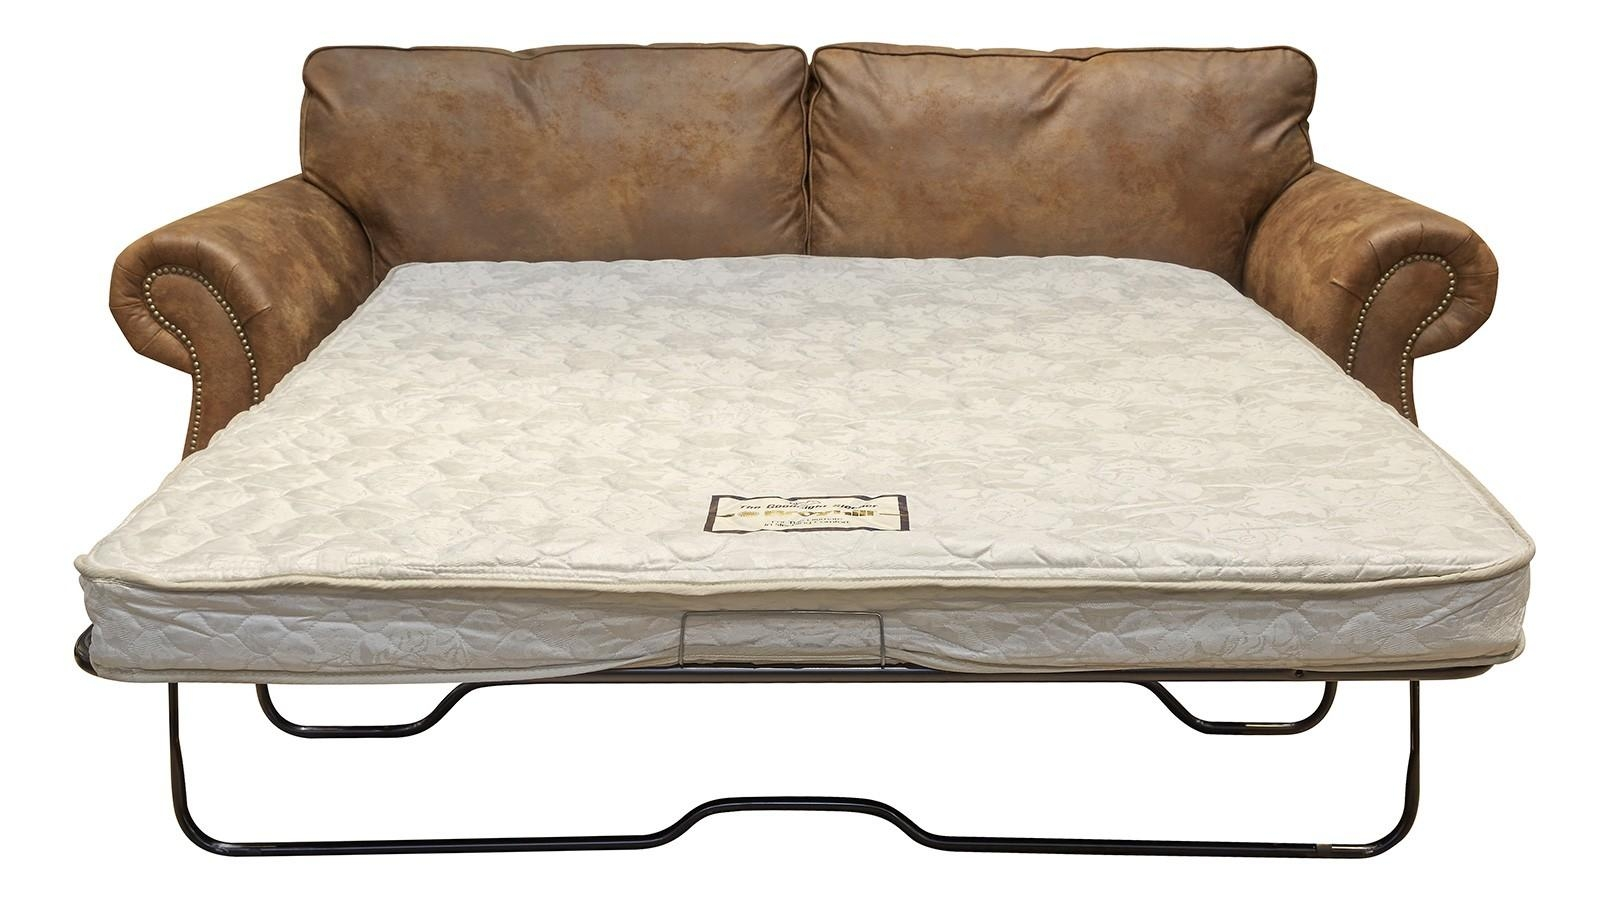 Texas Brown Queen Sleeper Sofa | Gallery Furniture With Regard To Sofa Beds Queen (View 18 of 21)